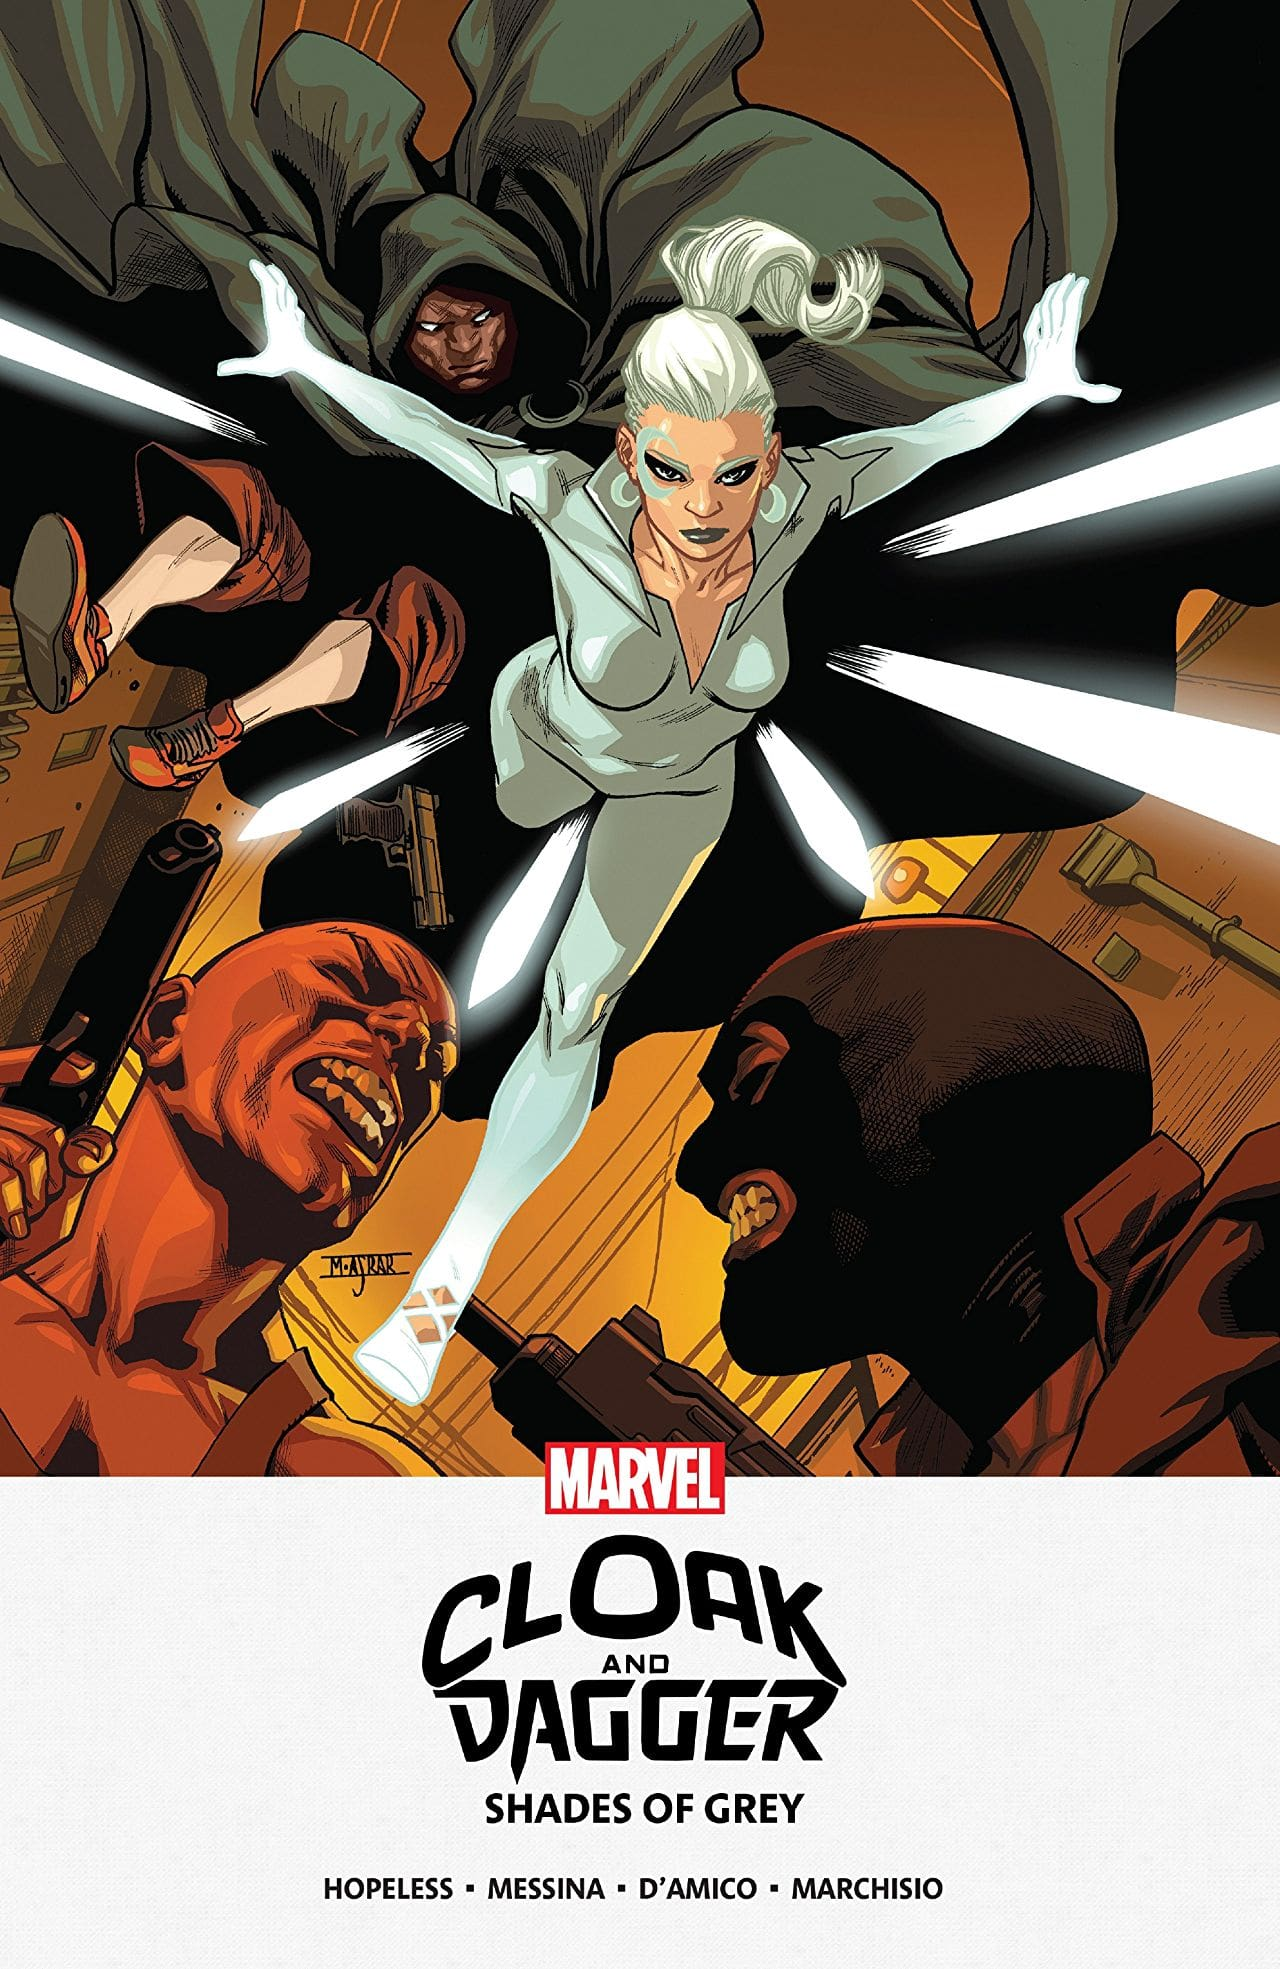 Cloak and Dagger: Shades of Grey review